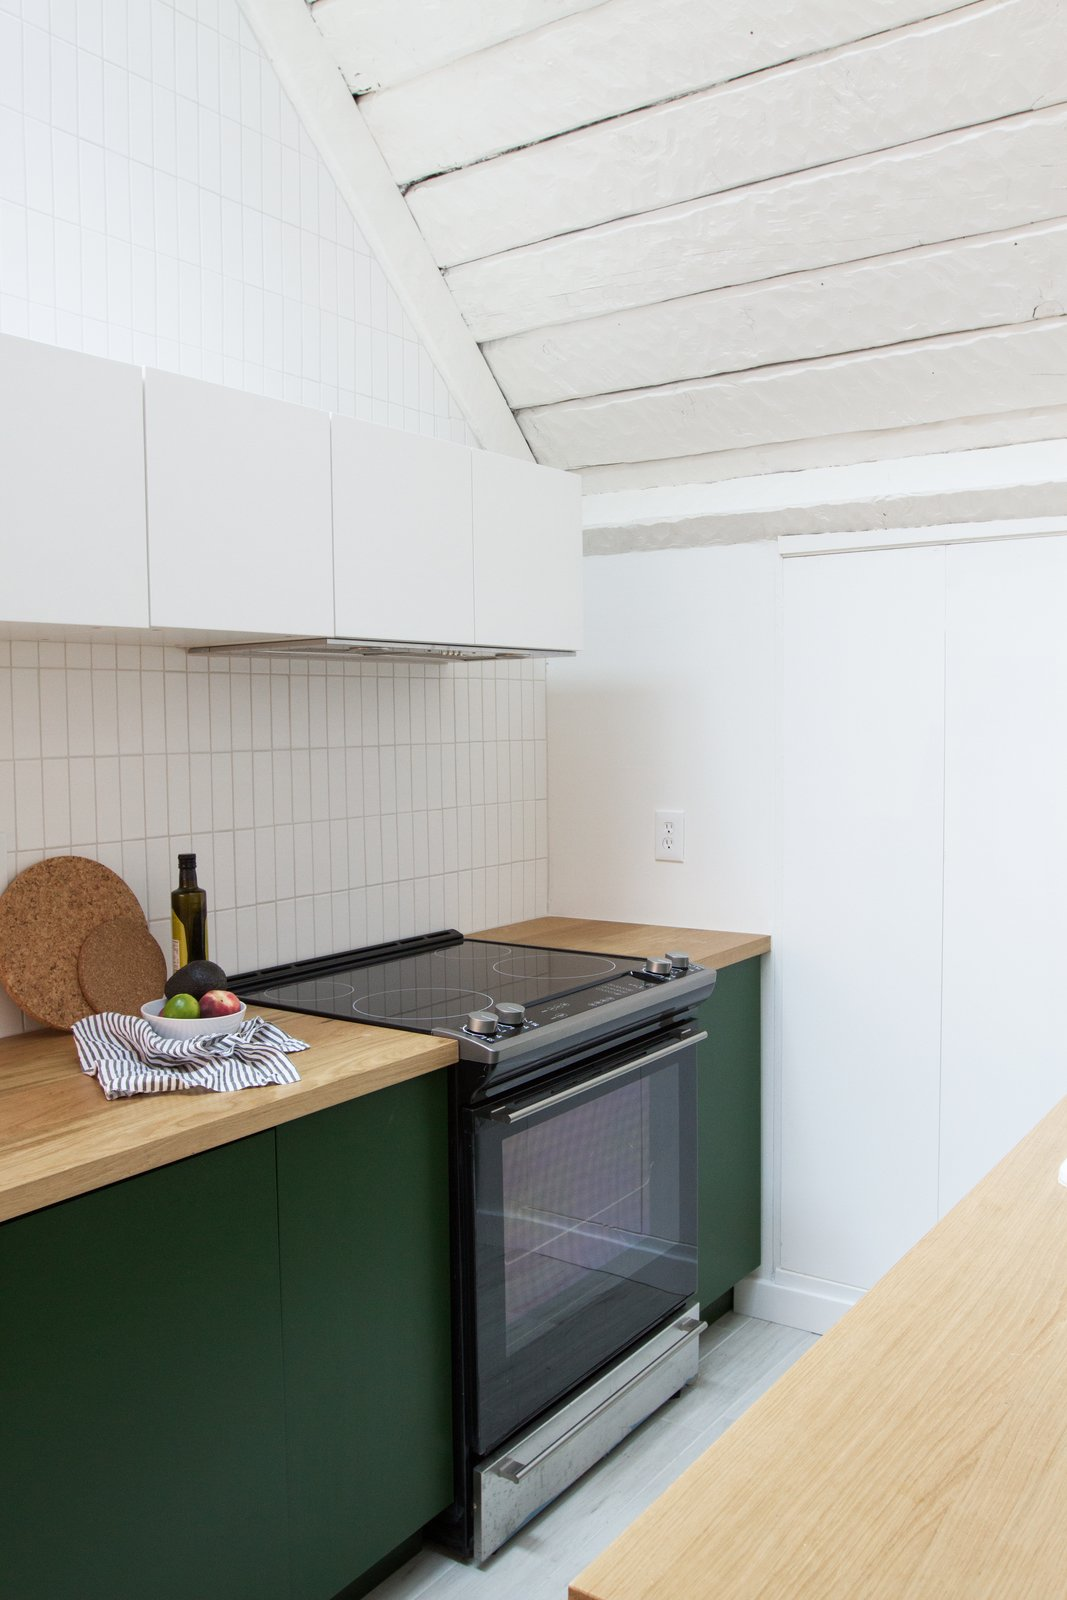 Kitchen, Range Hood, Wood, Ceramic Tile, Colorful, Porcelain Tile, Wall Oven, and Cooktops Samuel carried the handmade Fireclay tile up to the ceiling and painted the walls Polar Bear by Behr.  Best Kitchen Range Hood Colorful Photos